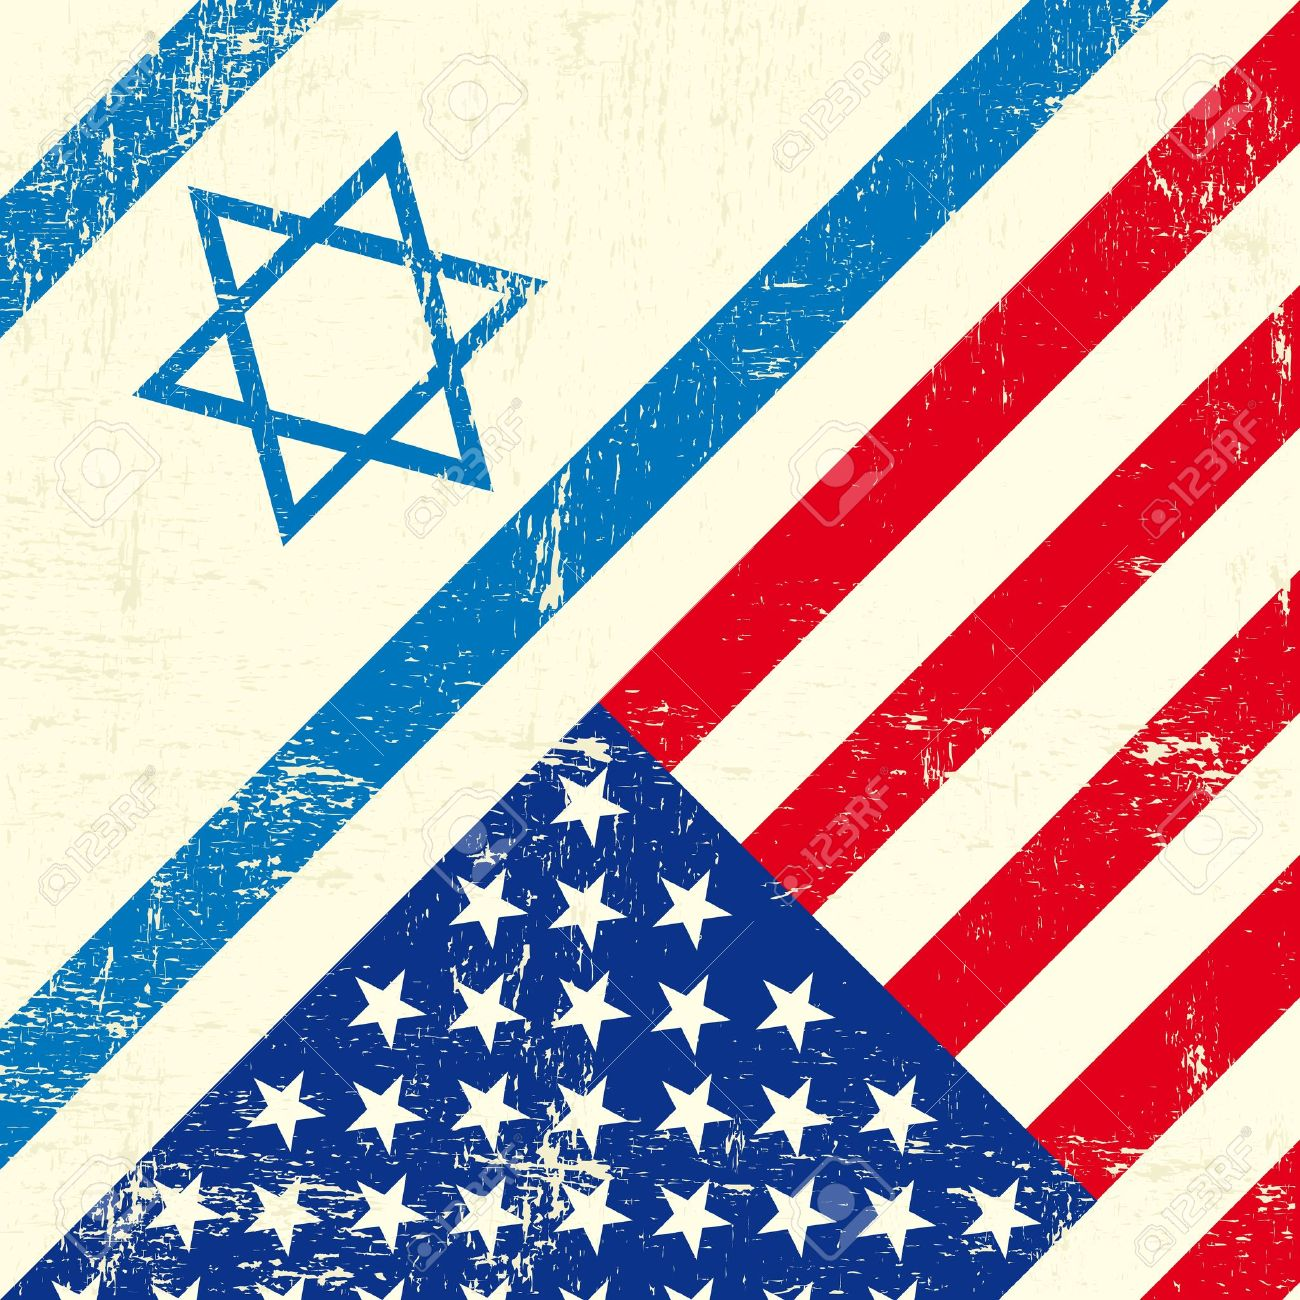 Mixed flag of Israel and the united states of America - 20007880